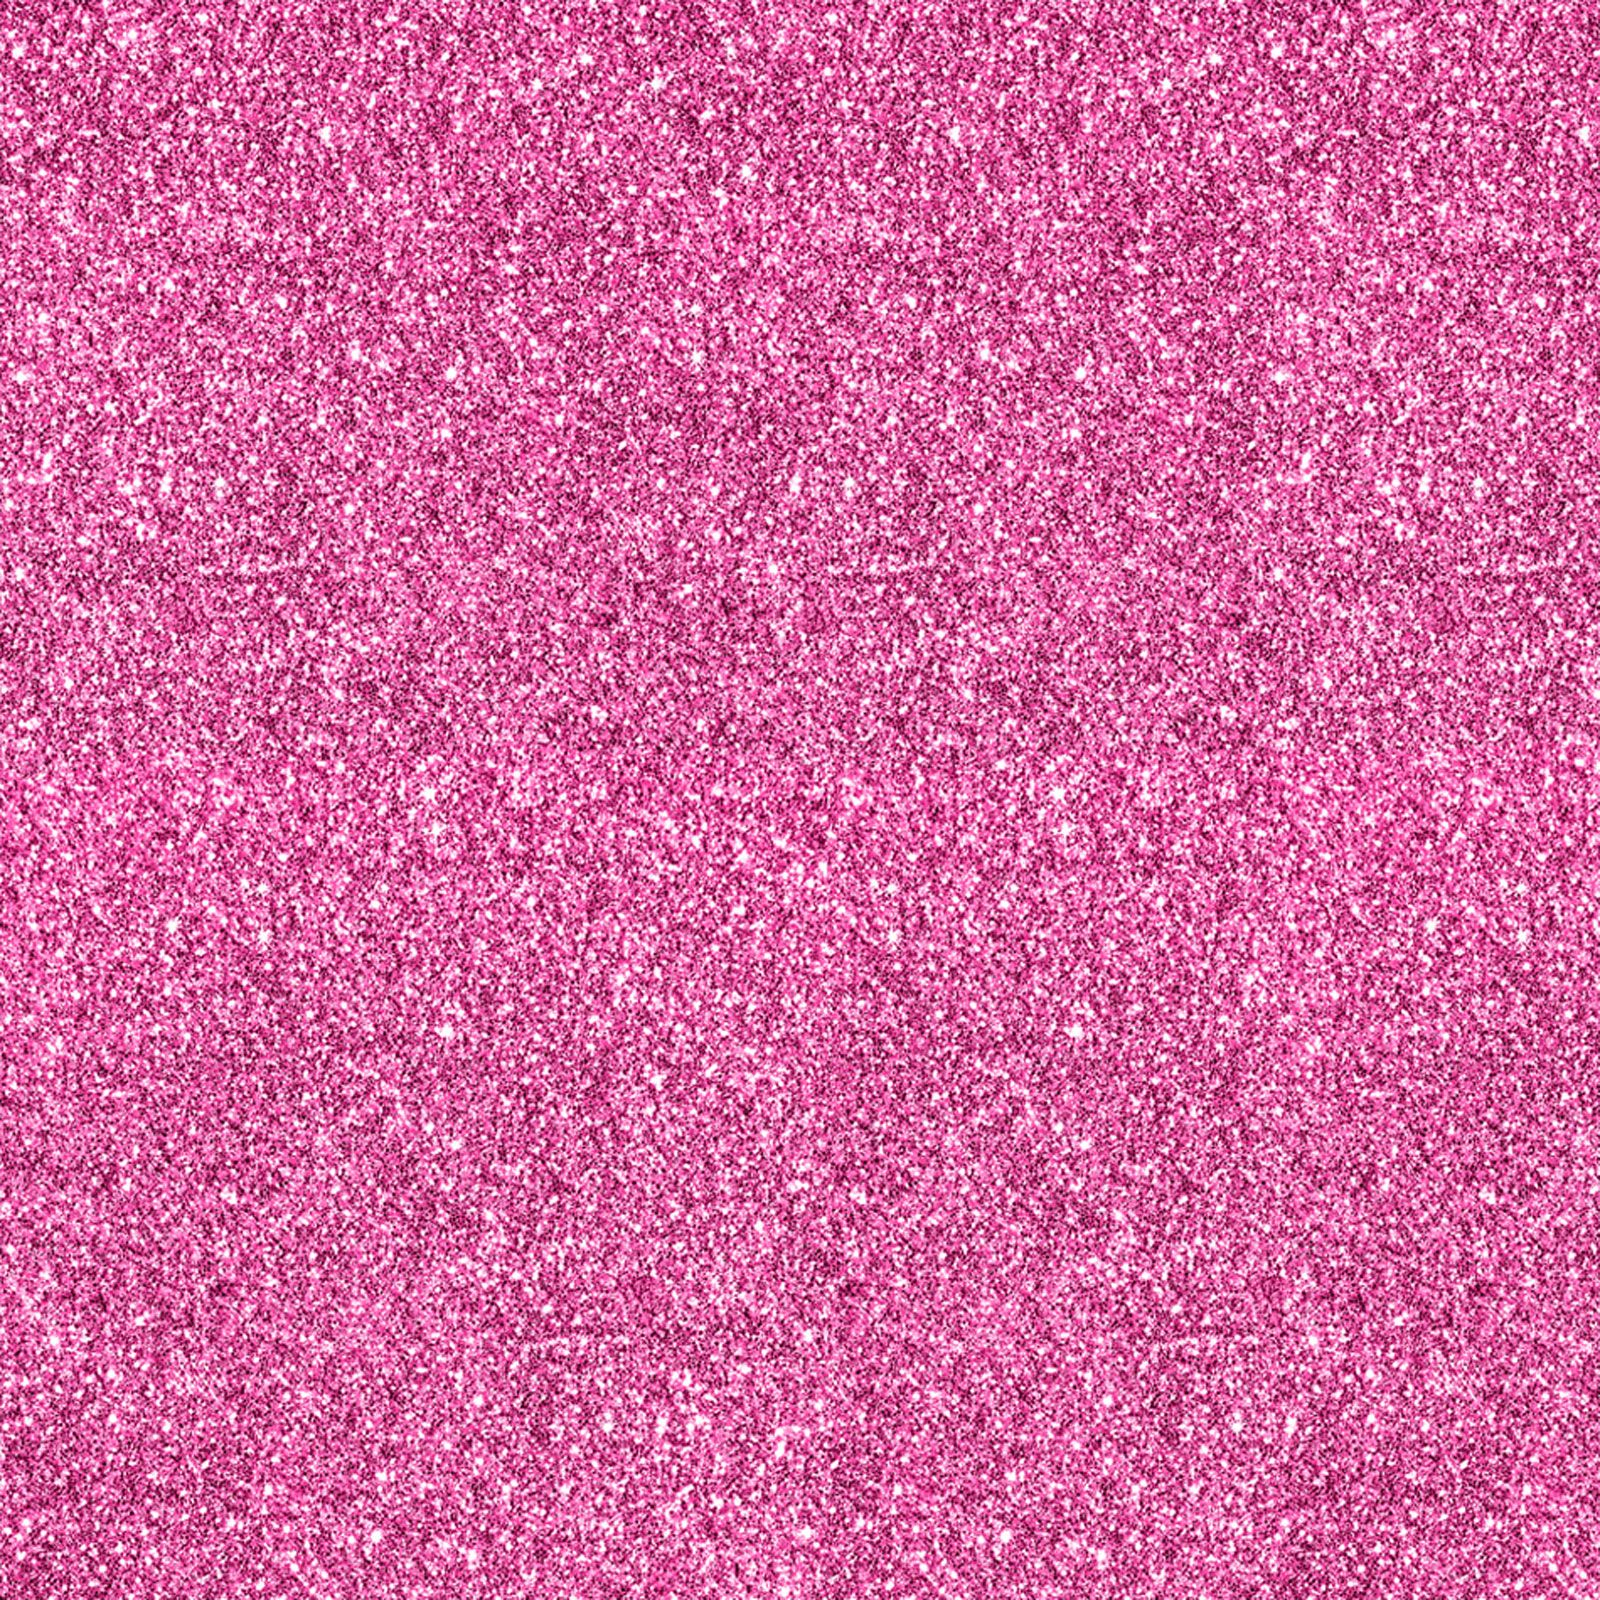 Sparkle Glitter Wallpaper Ideal For Feature Walls Pink